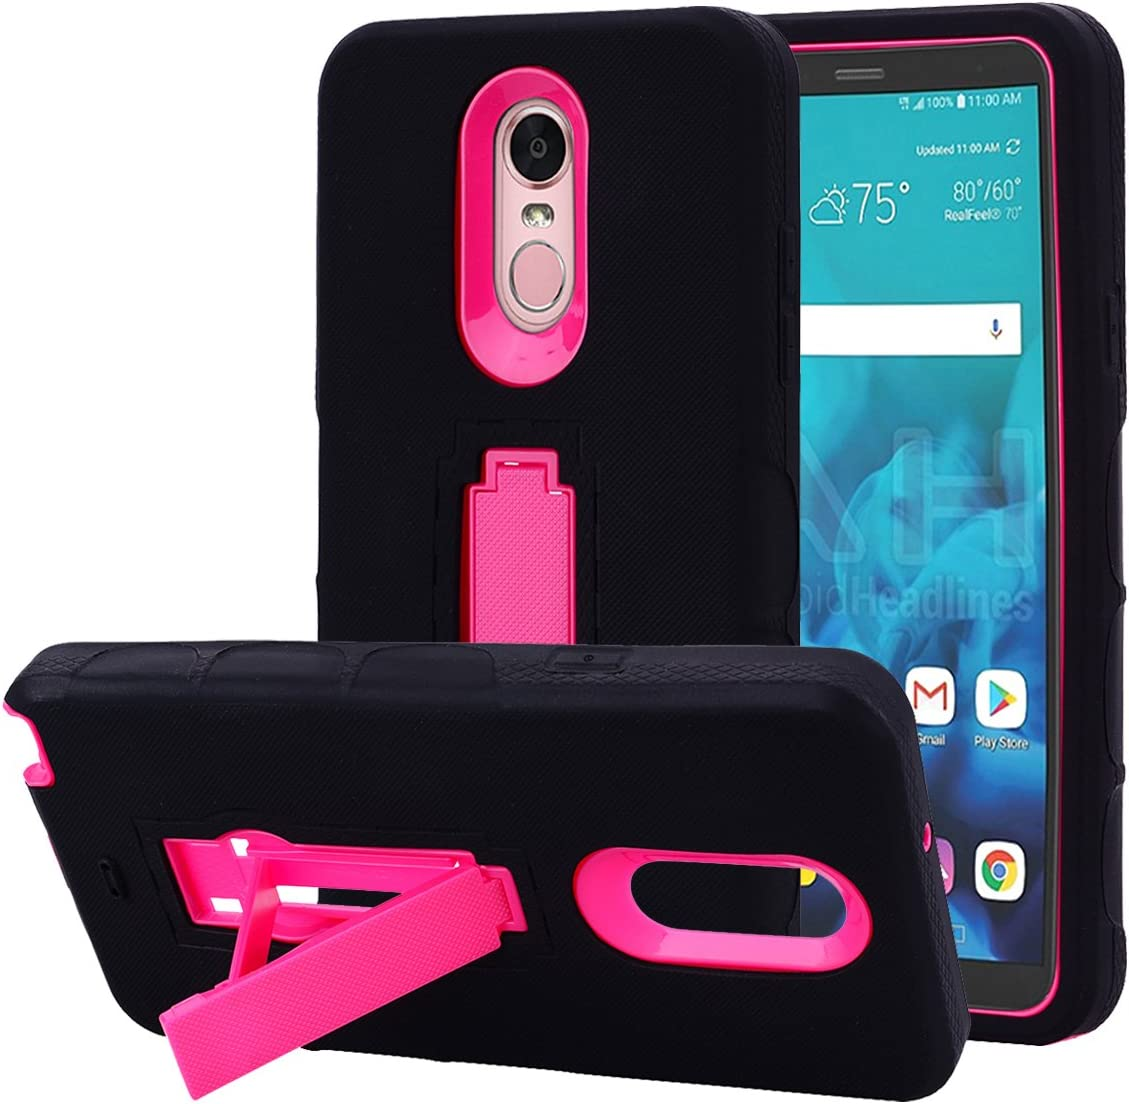 LG Stylo 4 Case, Binguowang Hybrid Heavy Duty Shockproof 3 in 1 design[Hard Plastic+Soft Silicone] Armor Defender Full-body Protective Case Cover with Kickstand for LG Stylo 4 2018. (Black/Rose)